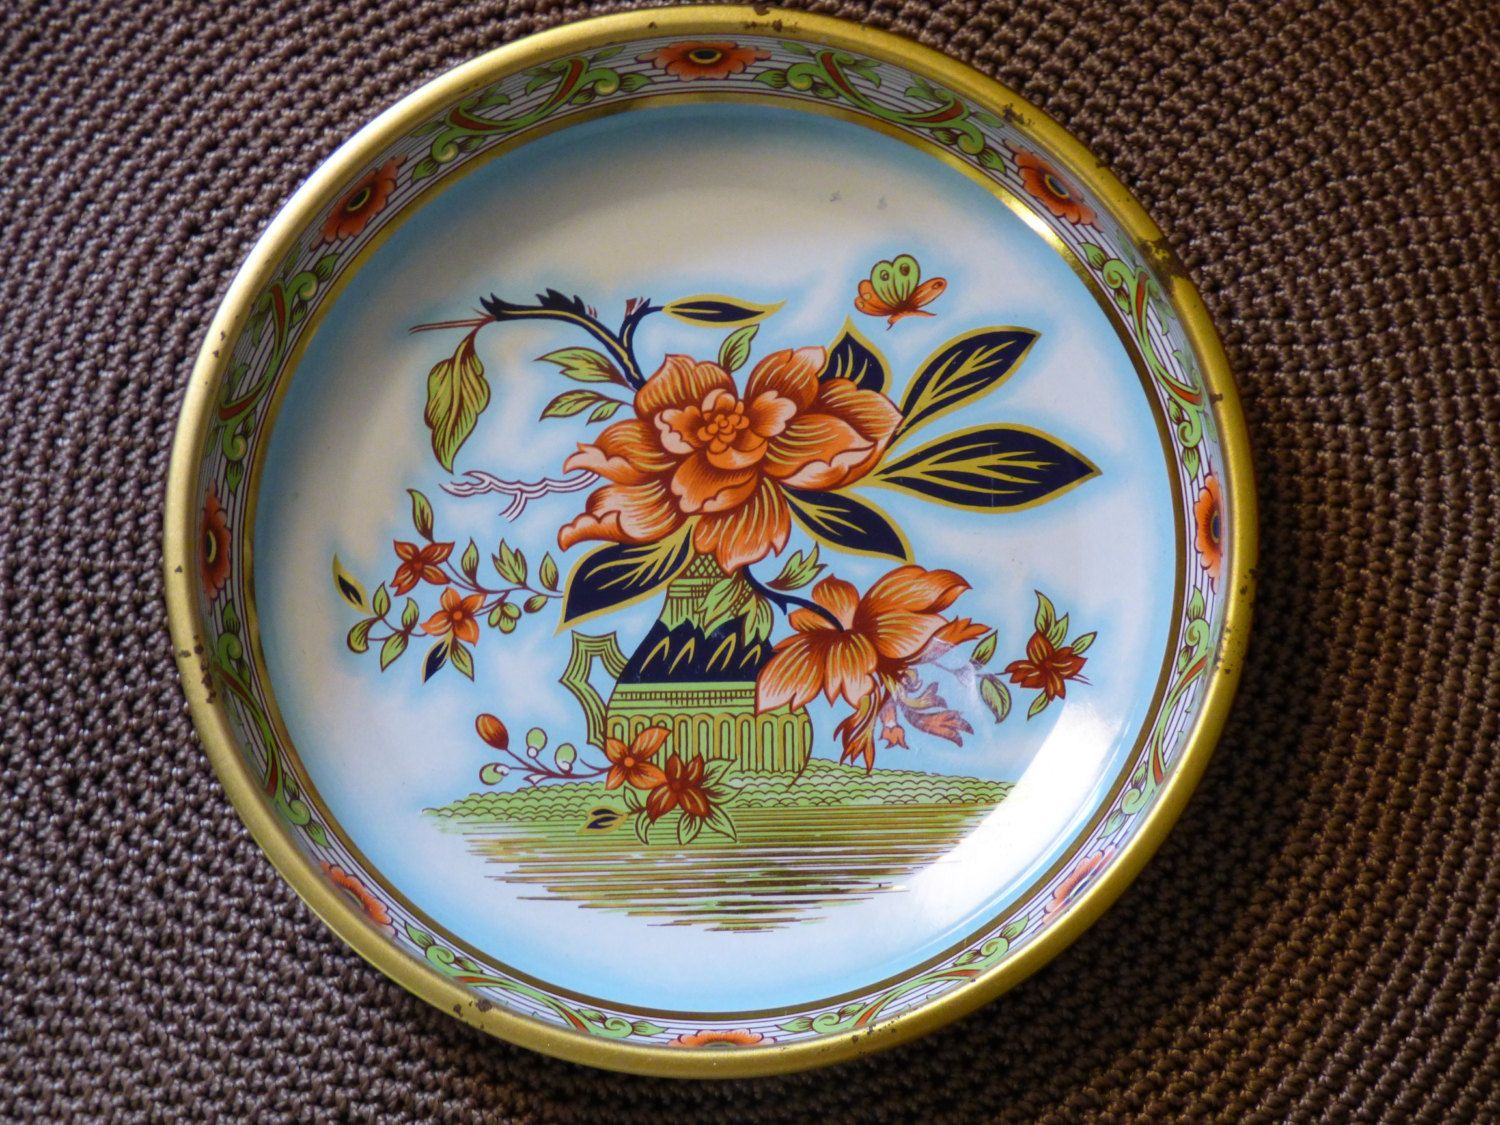 Daher Decorated Ware Tray Made In England Daher Decorated Ware  Long Island Ny Usa  Made In England